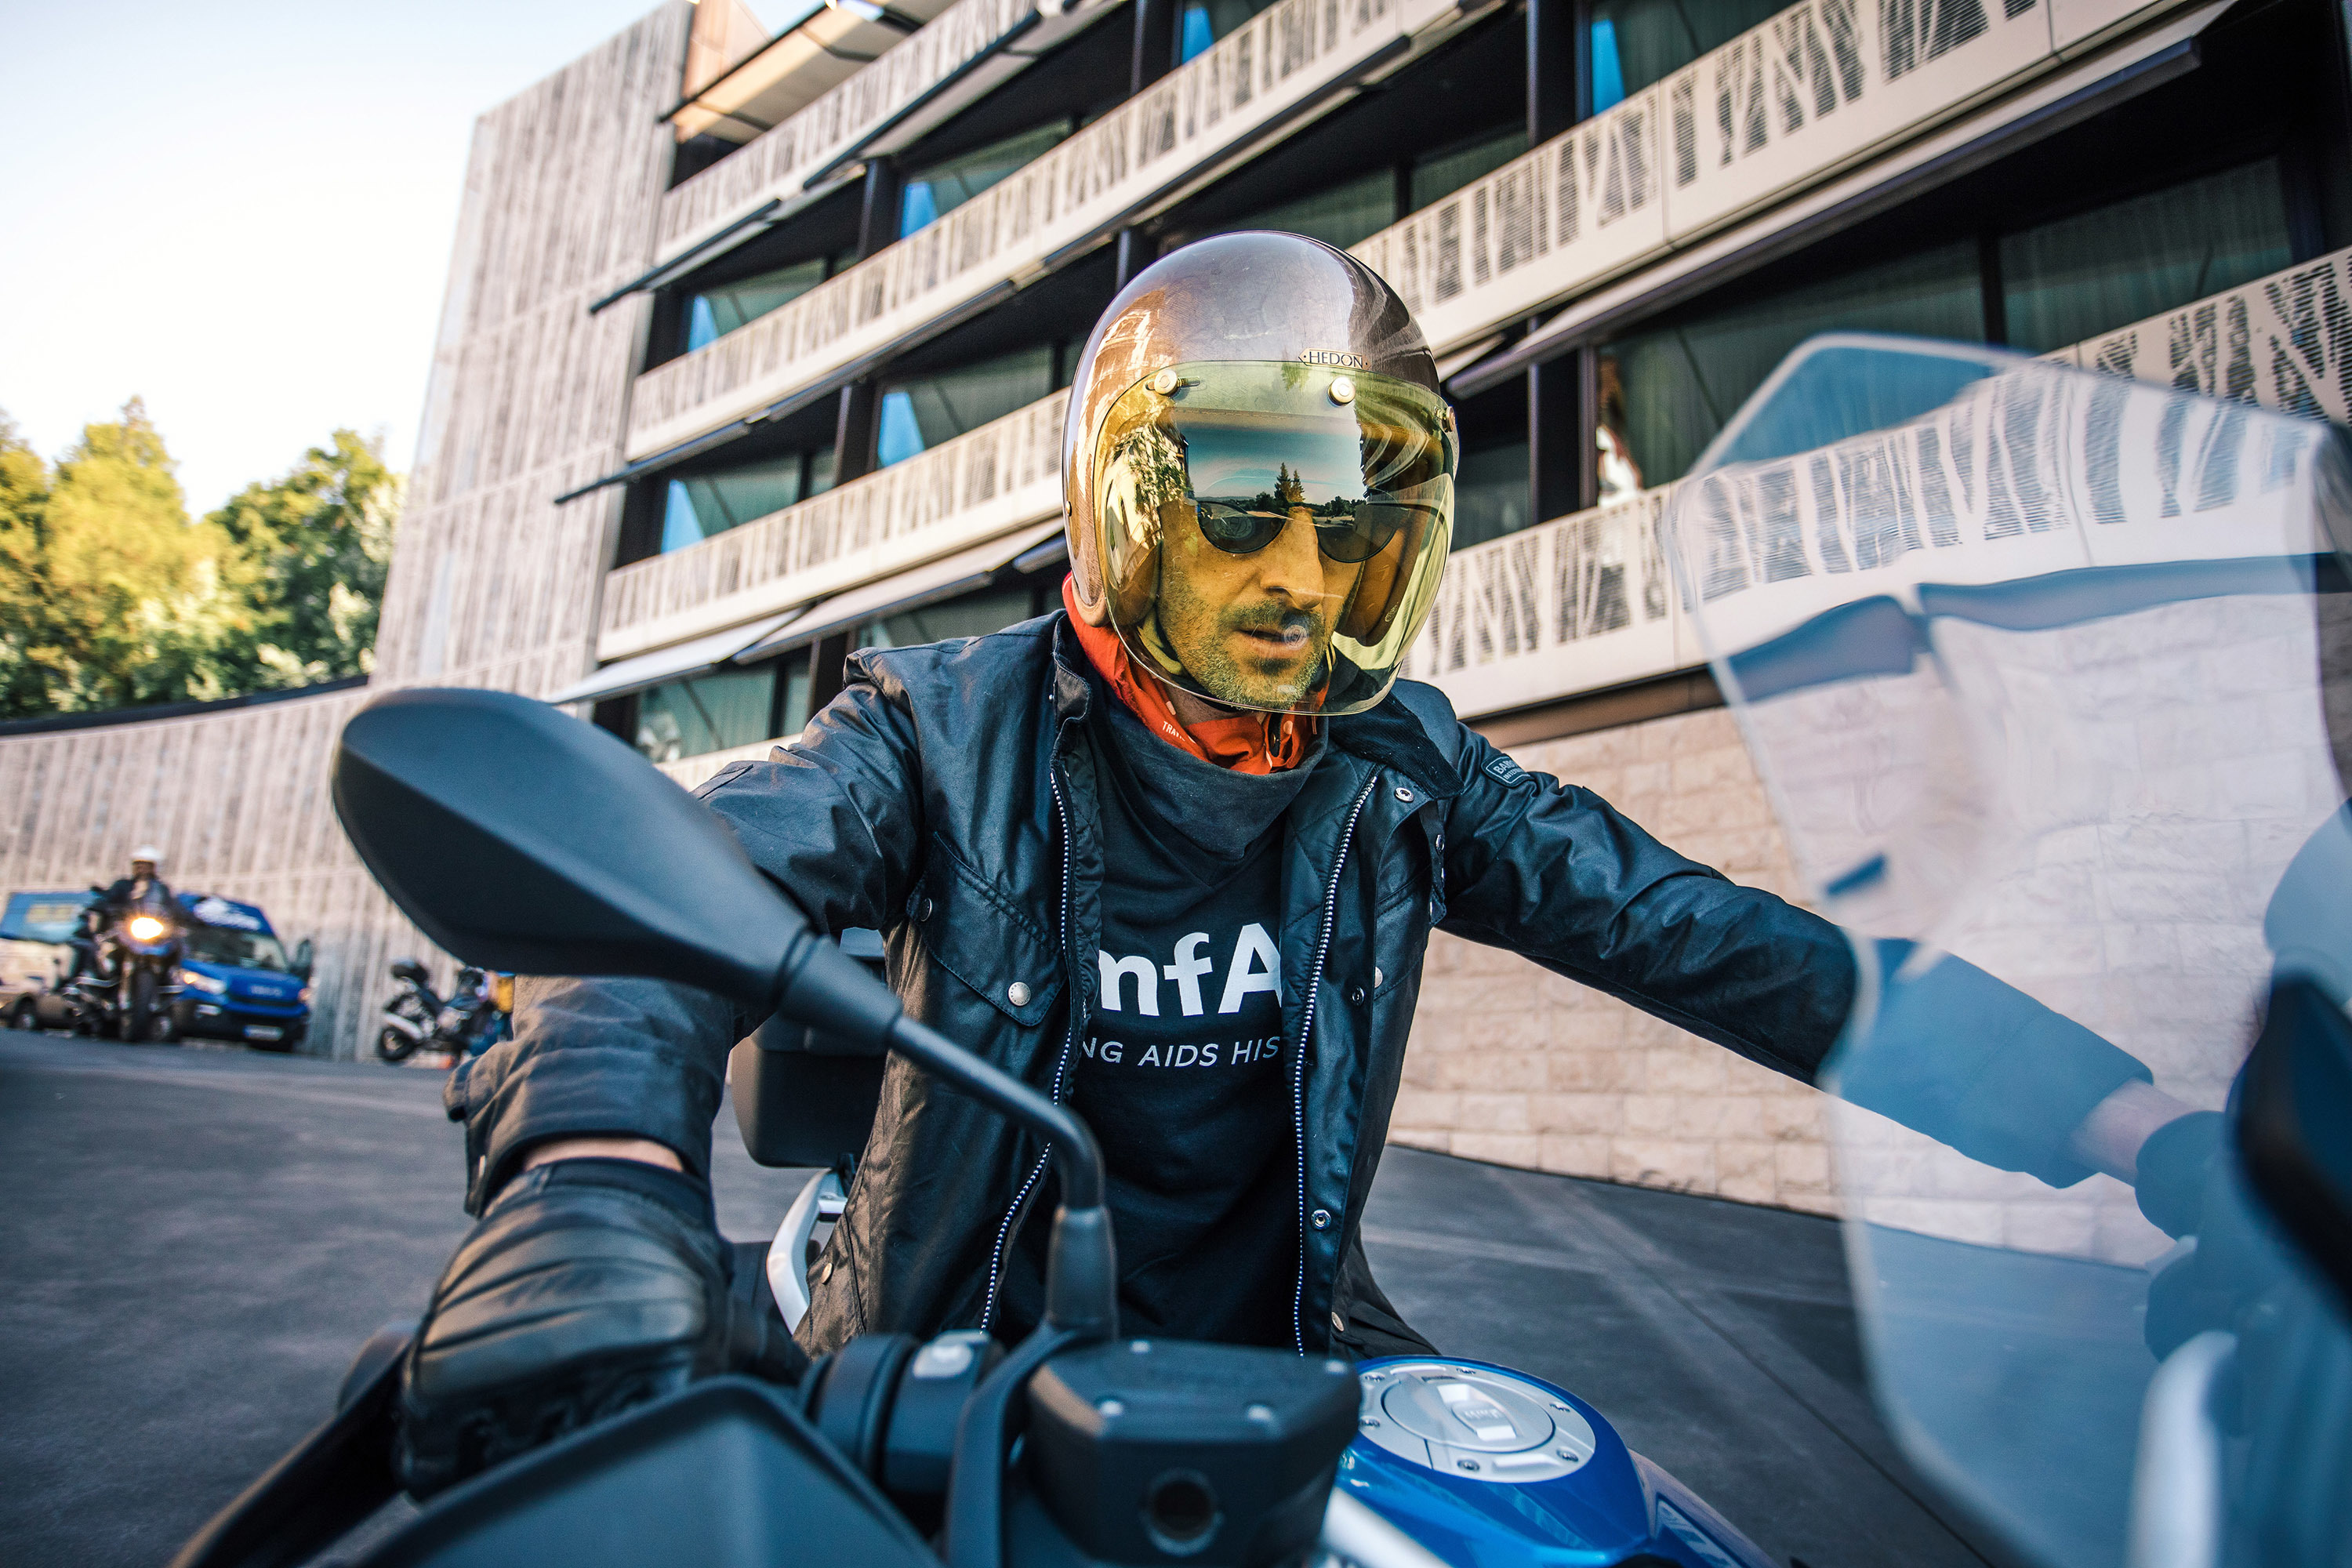 Adrien Brody sits on a motorbike during the press kick off and photo call for the 'amfAR Epic Ride to Life Ball' at Dolder Grand Hotel in Zurich, Switzerland, on May 30, 2018.